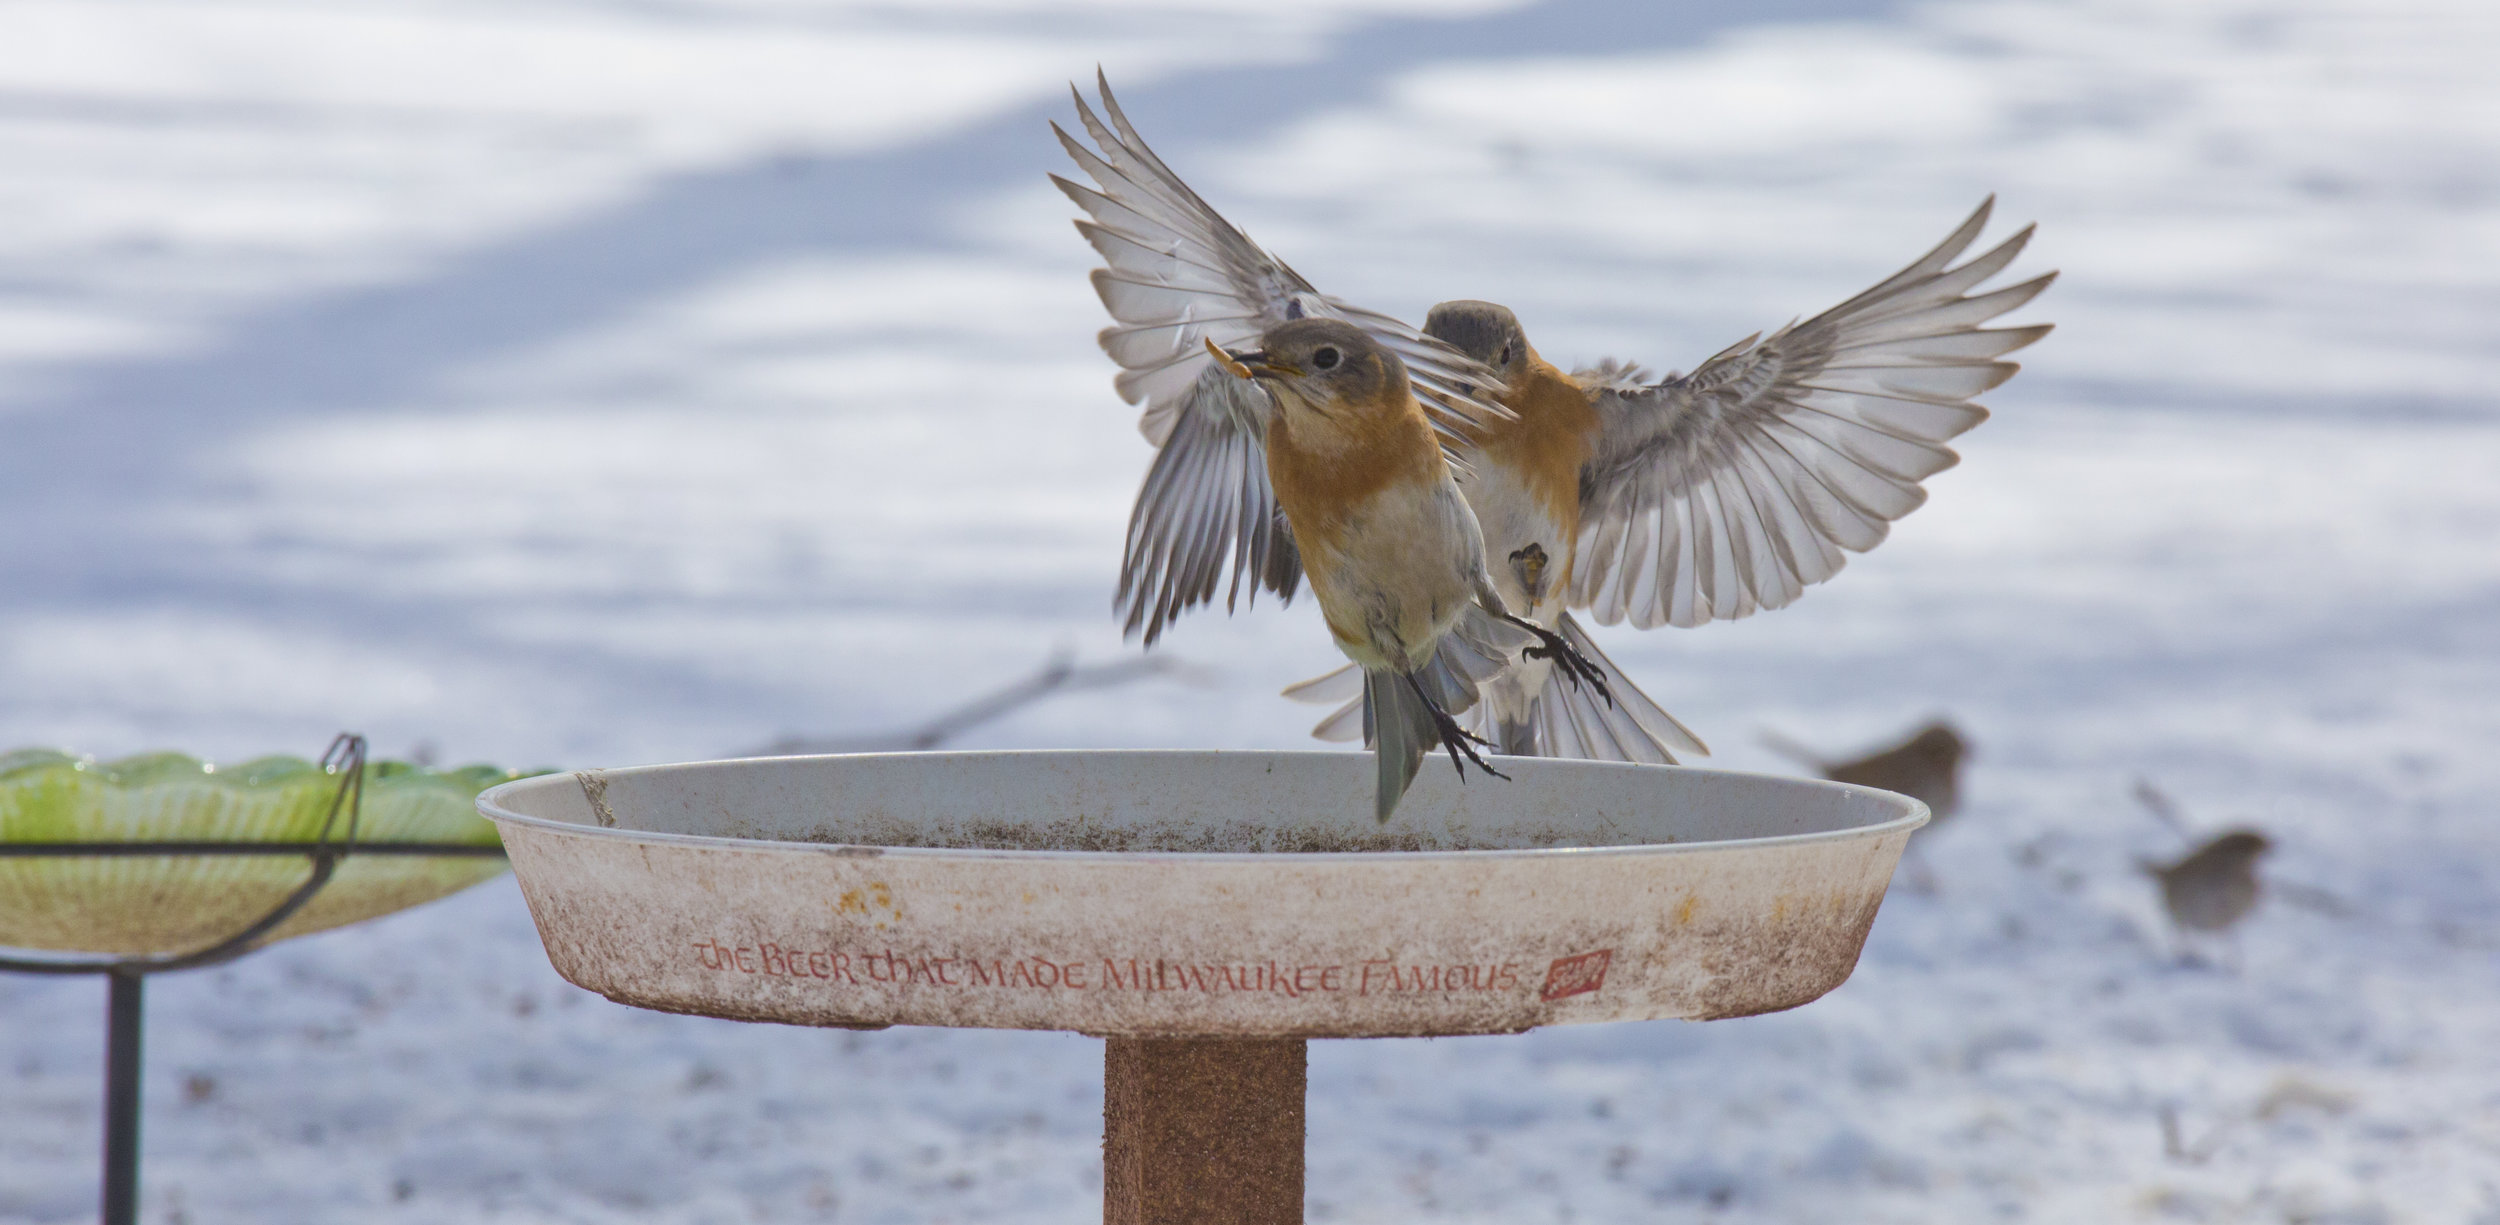 I snapped these female Eastern Bluebirds one winter, a couple years back. Was a planned shoot. Bluebirds had been in the yard for a while longer this winter. Set up my DSLR on a tripod, filled this dish with their favorite snack - mealworms, returned to the camera in time to rapid fire a sequence of photos; this was one. One of my favorites.  Take off and Landing.